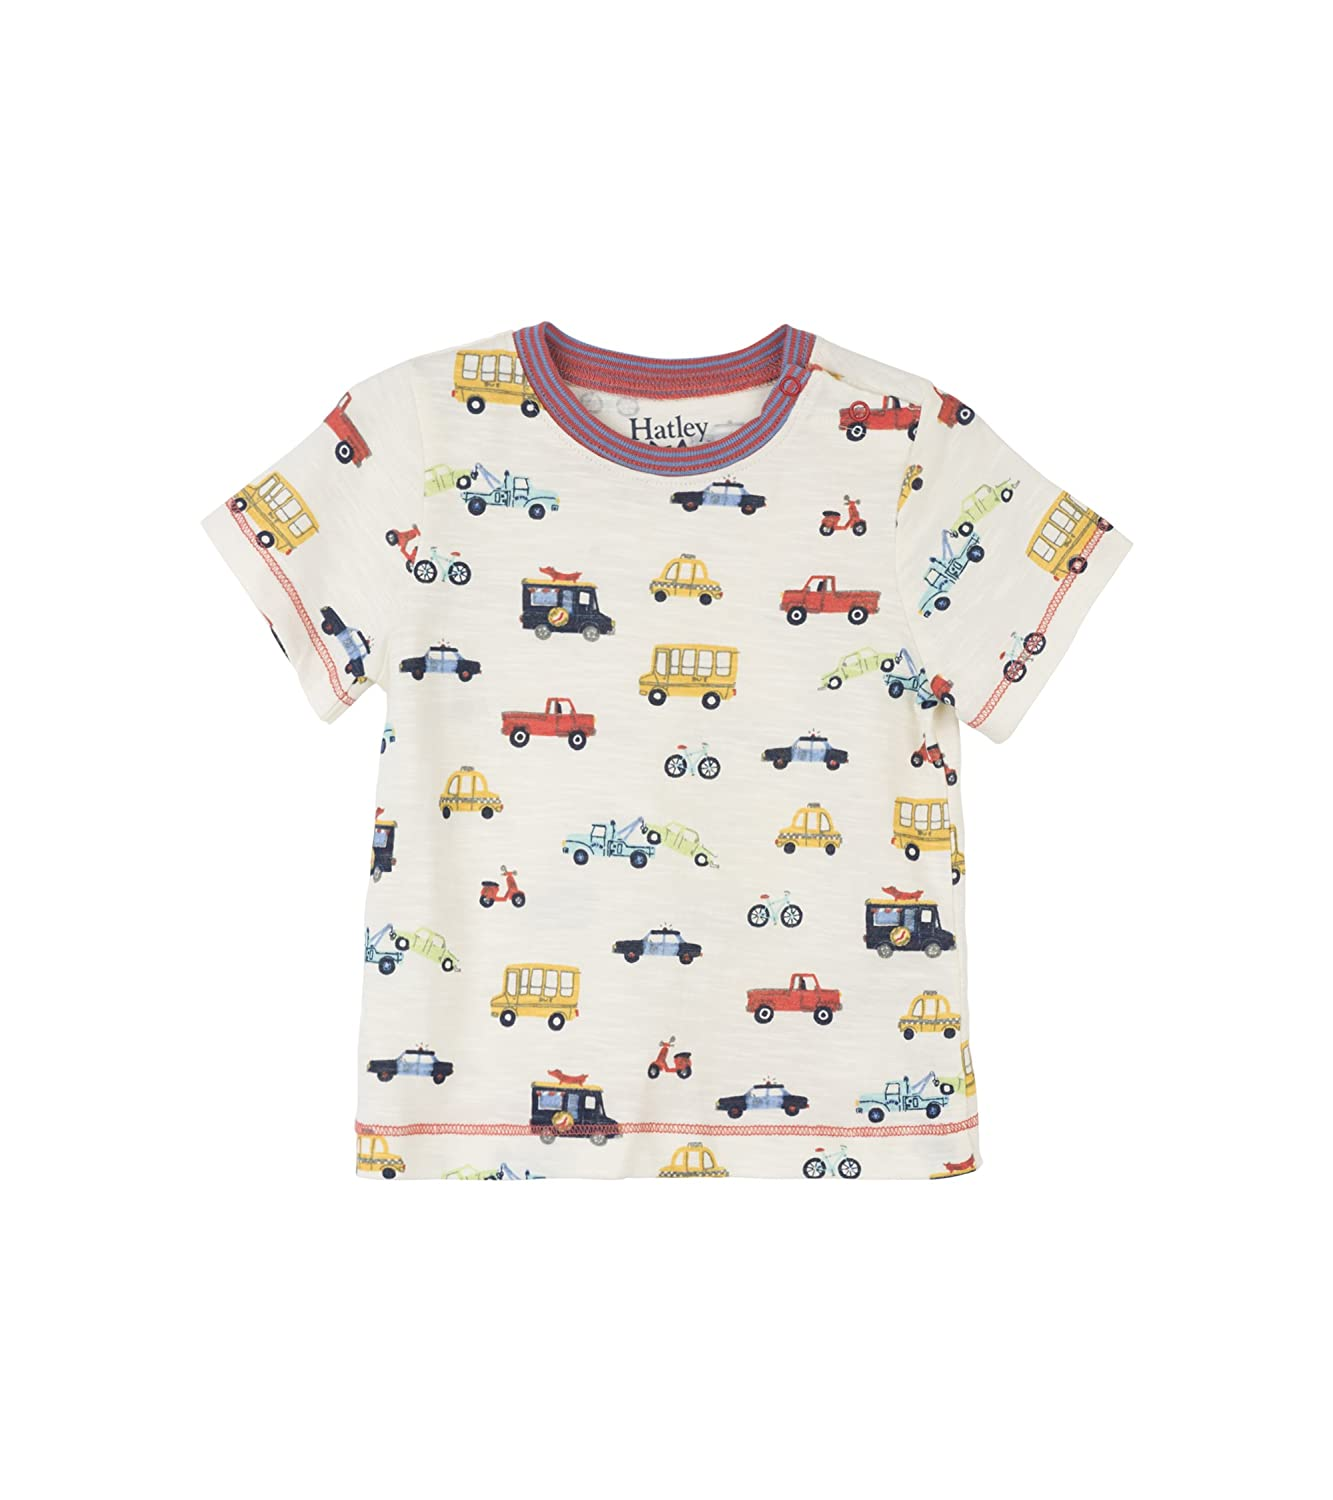 Hatley Baby Boys' Mini Short Sleeve Graphic Tee T-Shirt